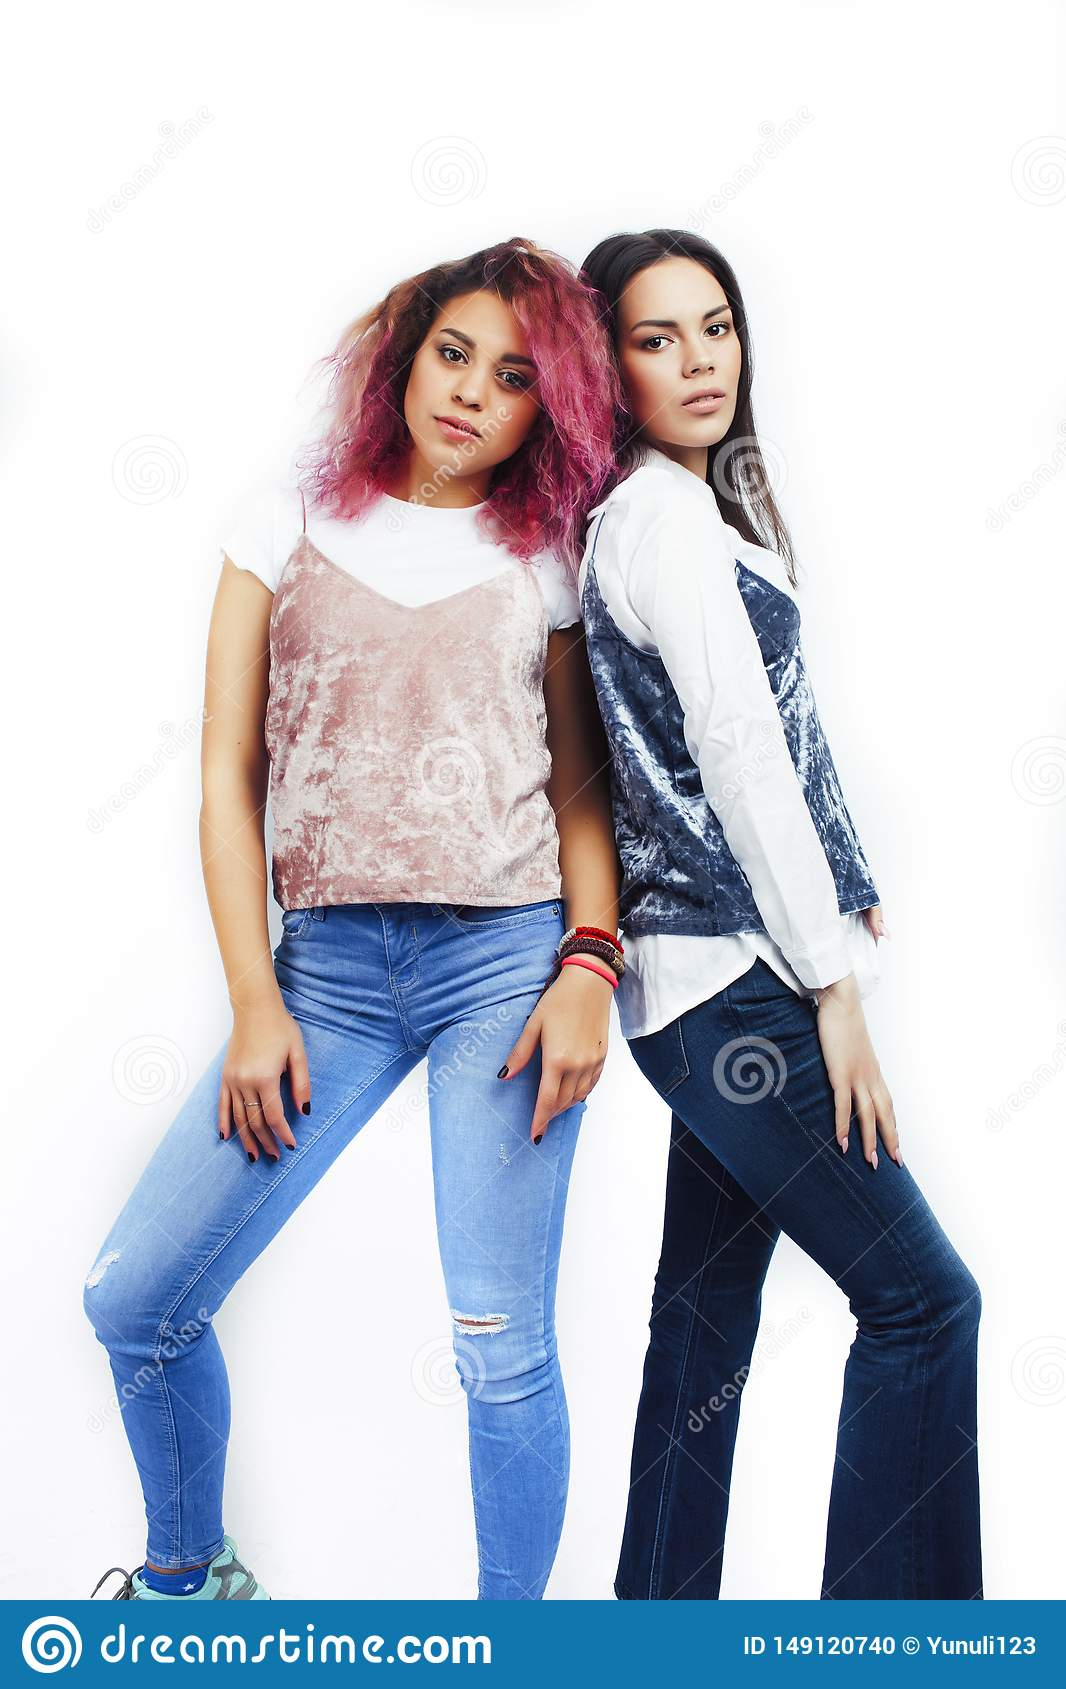 Best friends teenage girls together having fun, posing emotional isolated on white background, asian and latin american